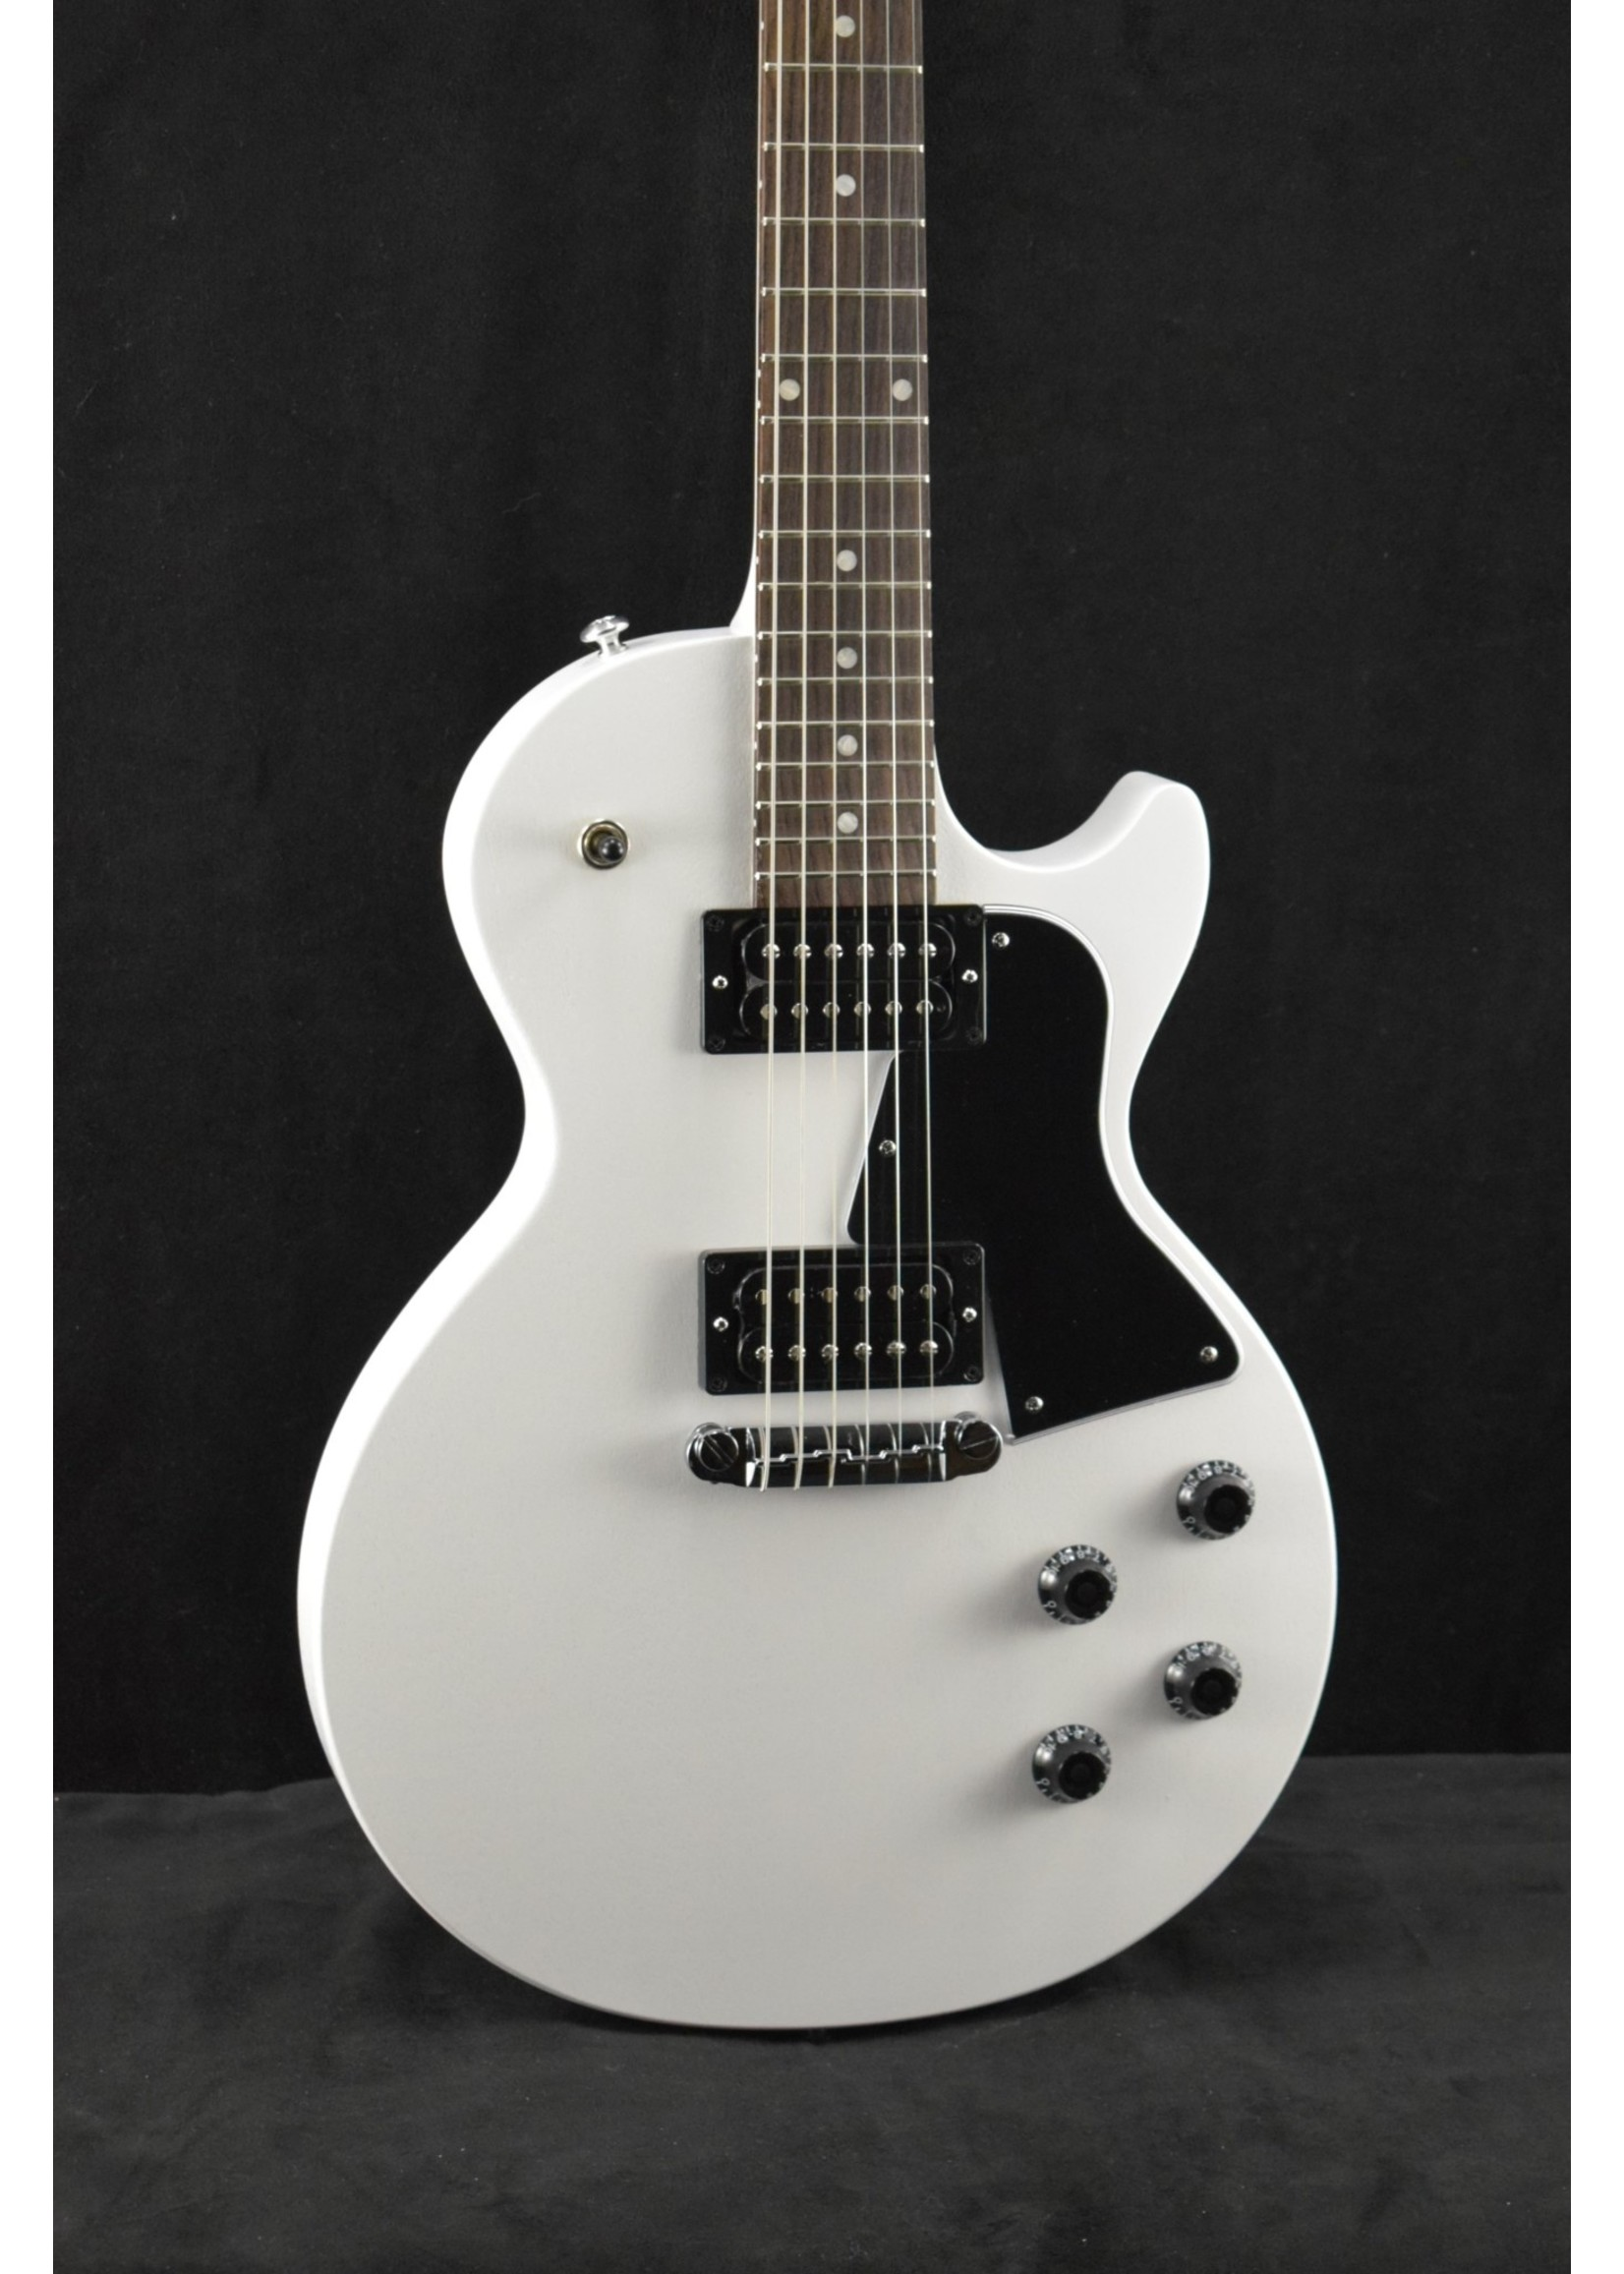 Gibson Gibson Les Paul Special Tribute Humbucker Worn White Satin